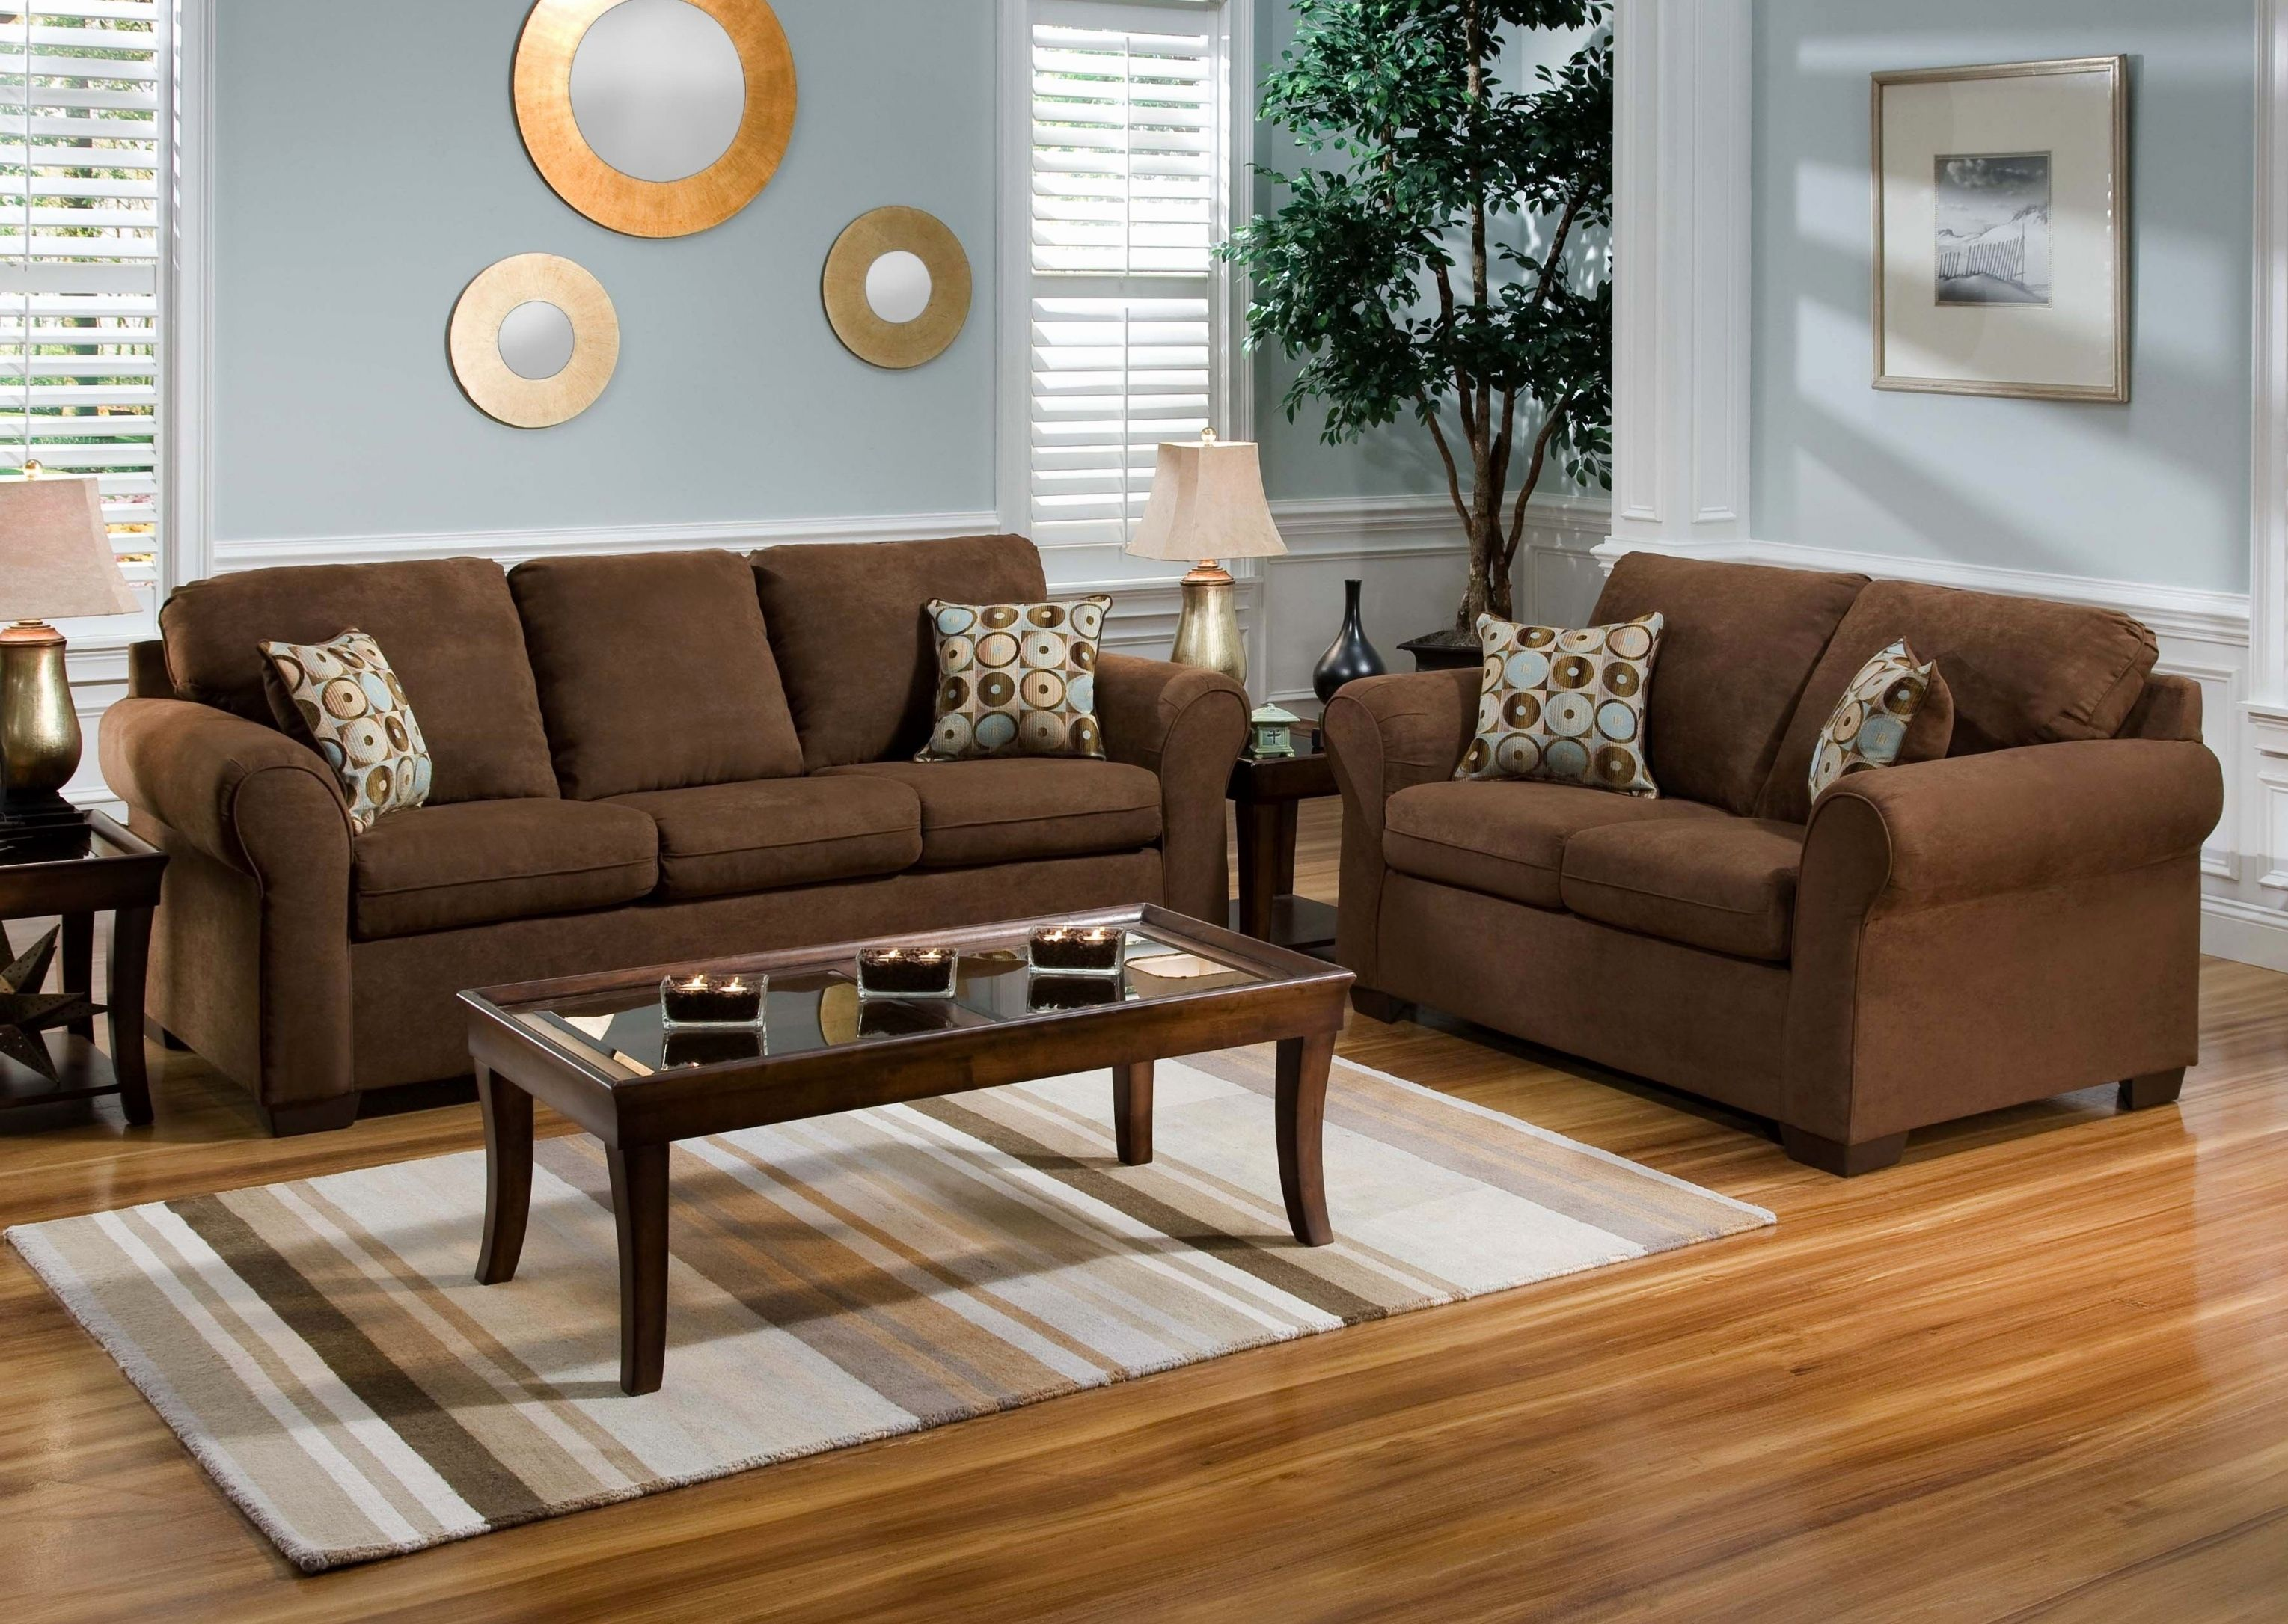 Inspirational Living Room Ideas With Light Brown Sofas Sl16n2q Https Sherriematul Warm Living Room Colors Brown Living Room Decor Brown Furniture Living Room